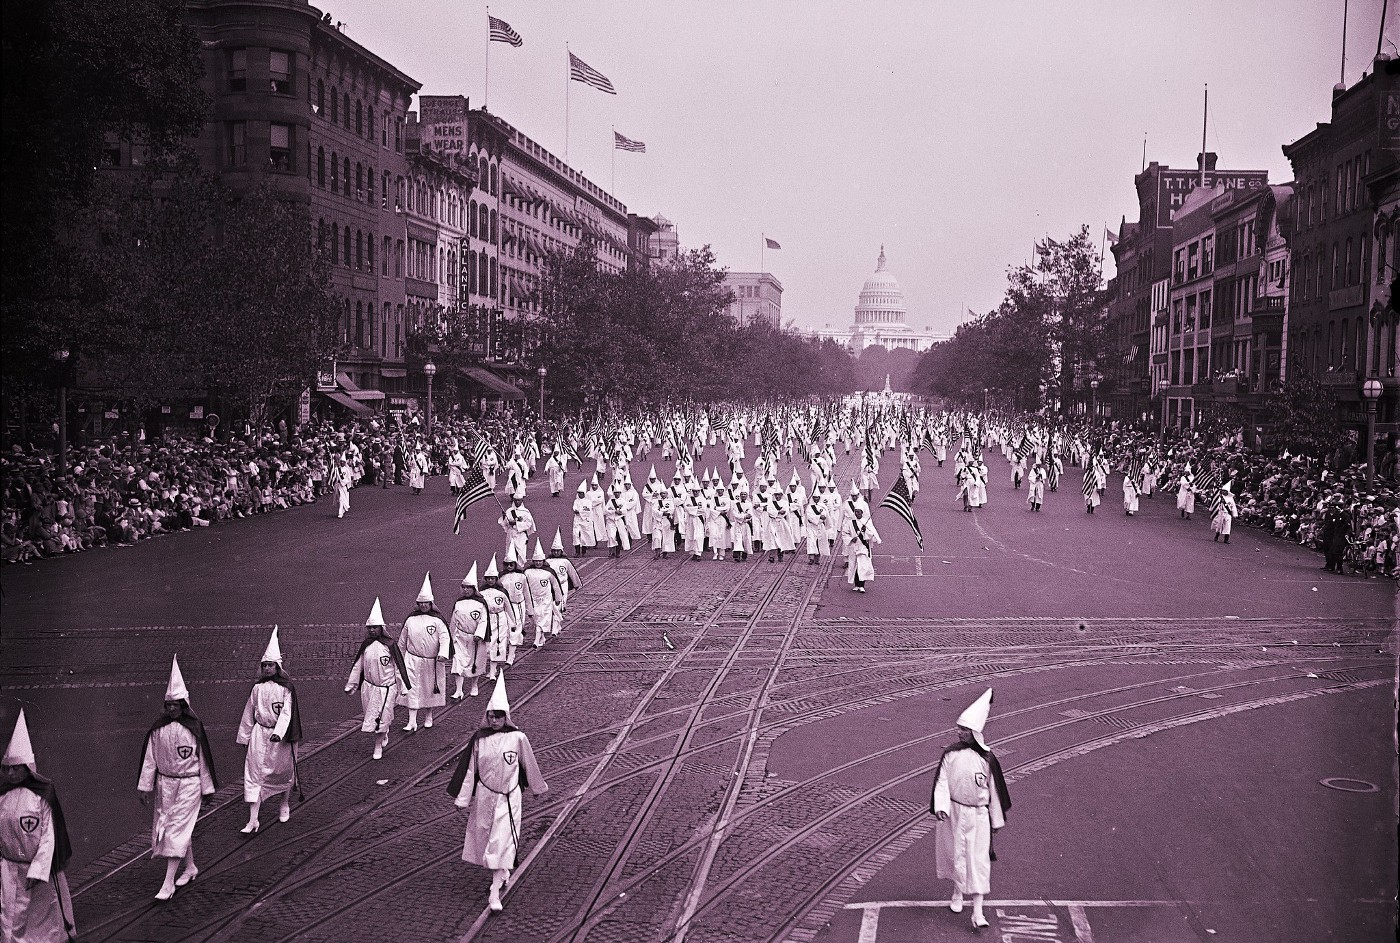 KKK Marching in White Hoods in the USA 1926, white supremacy, hate, racism, white rage, inequality, injustice, racist, race